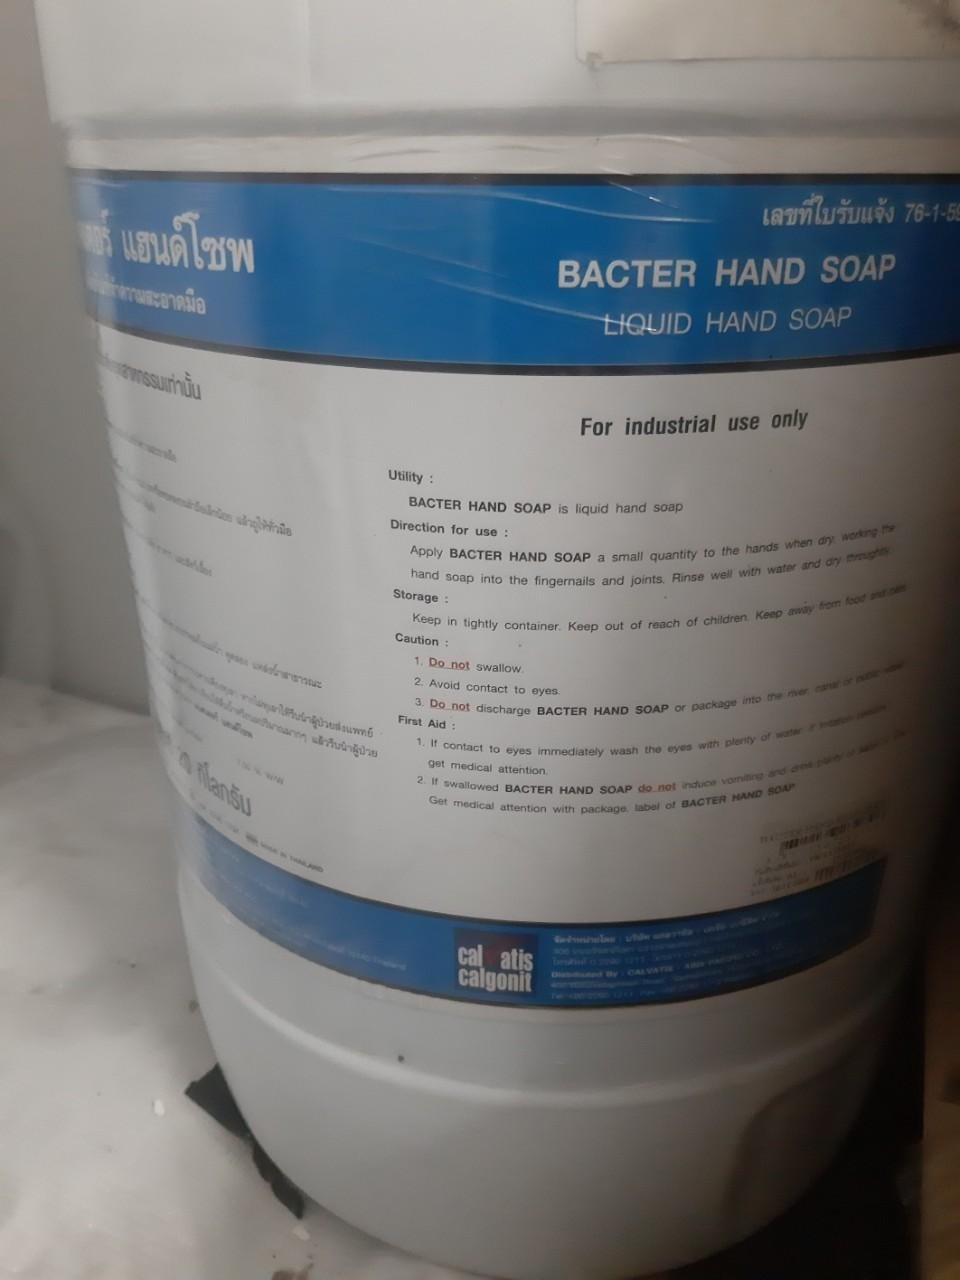 BACTER HAND SOAP